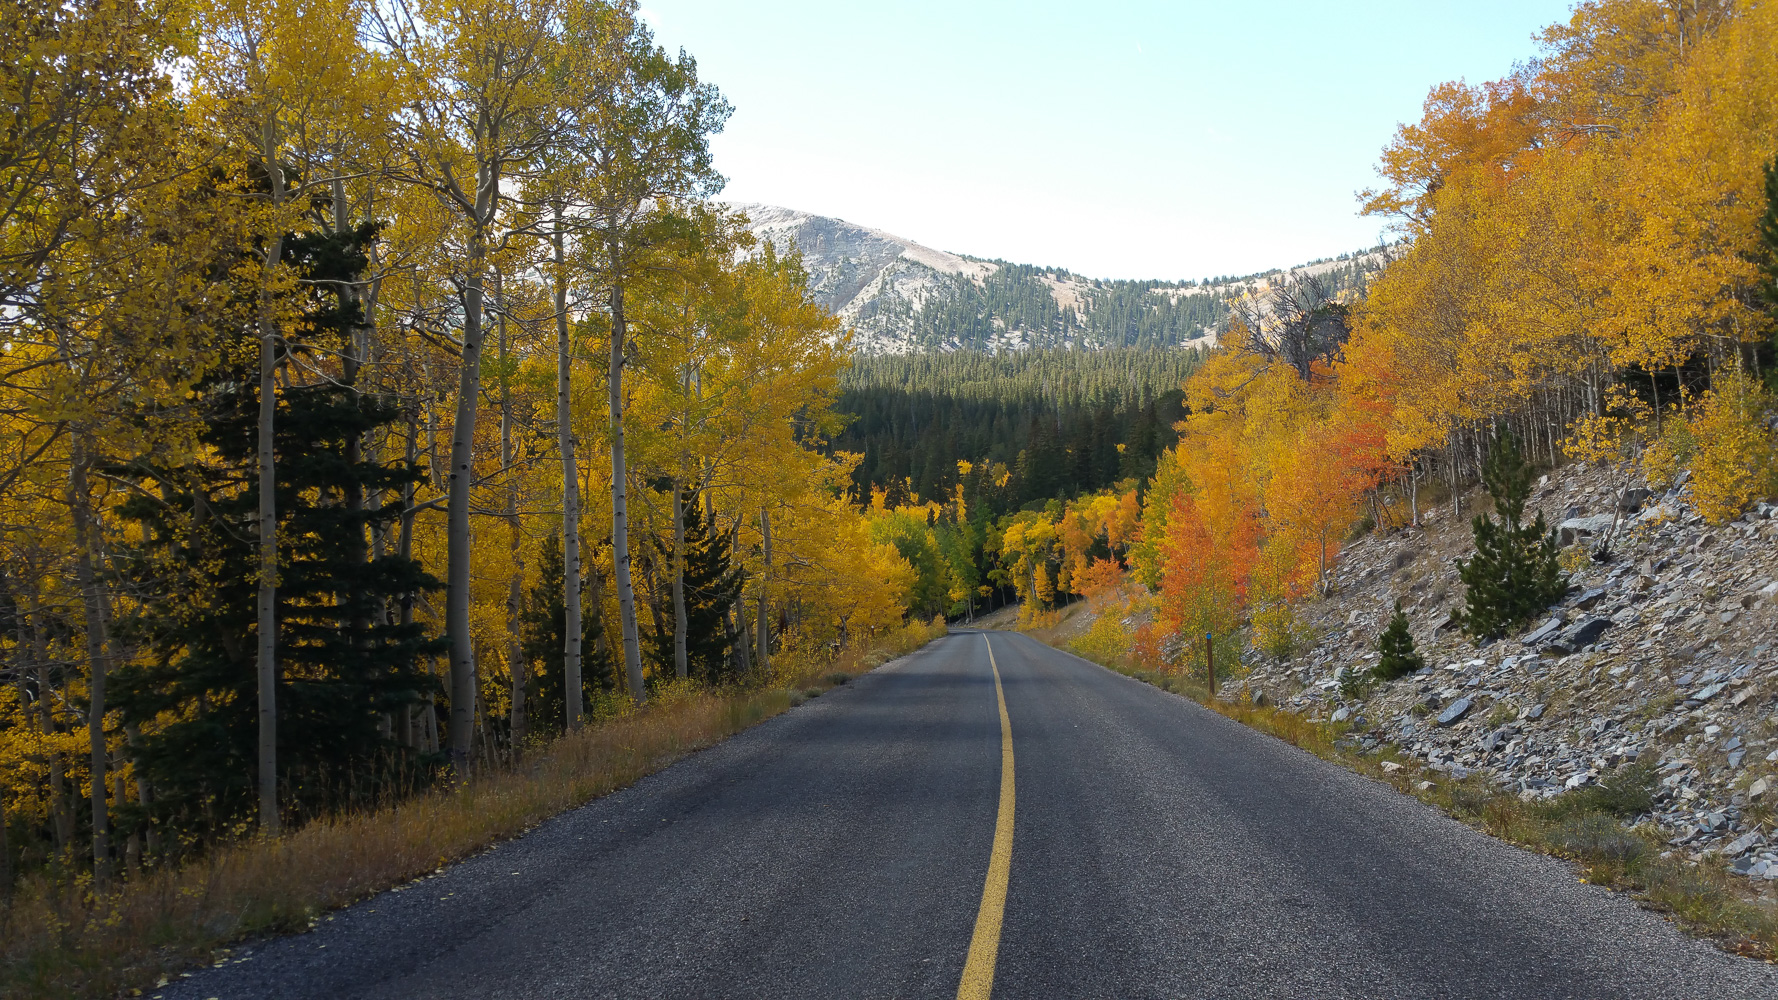 Driving into the Great Basin National Park and finally finding some color at the upper elevations